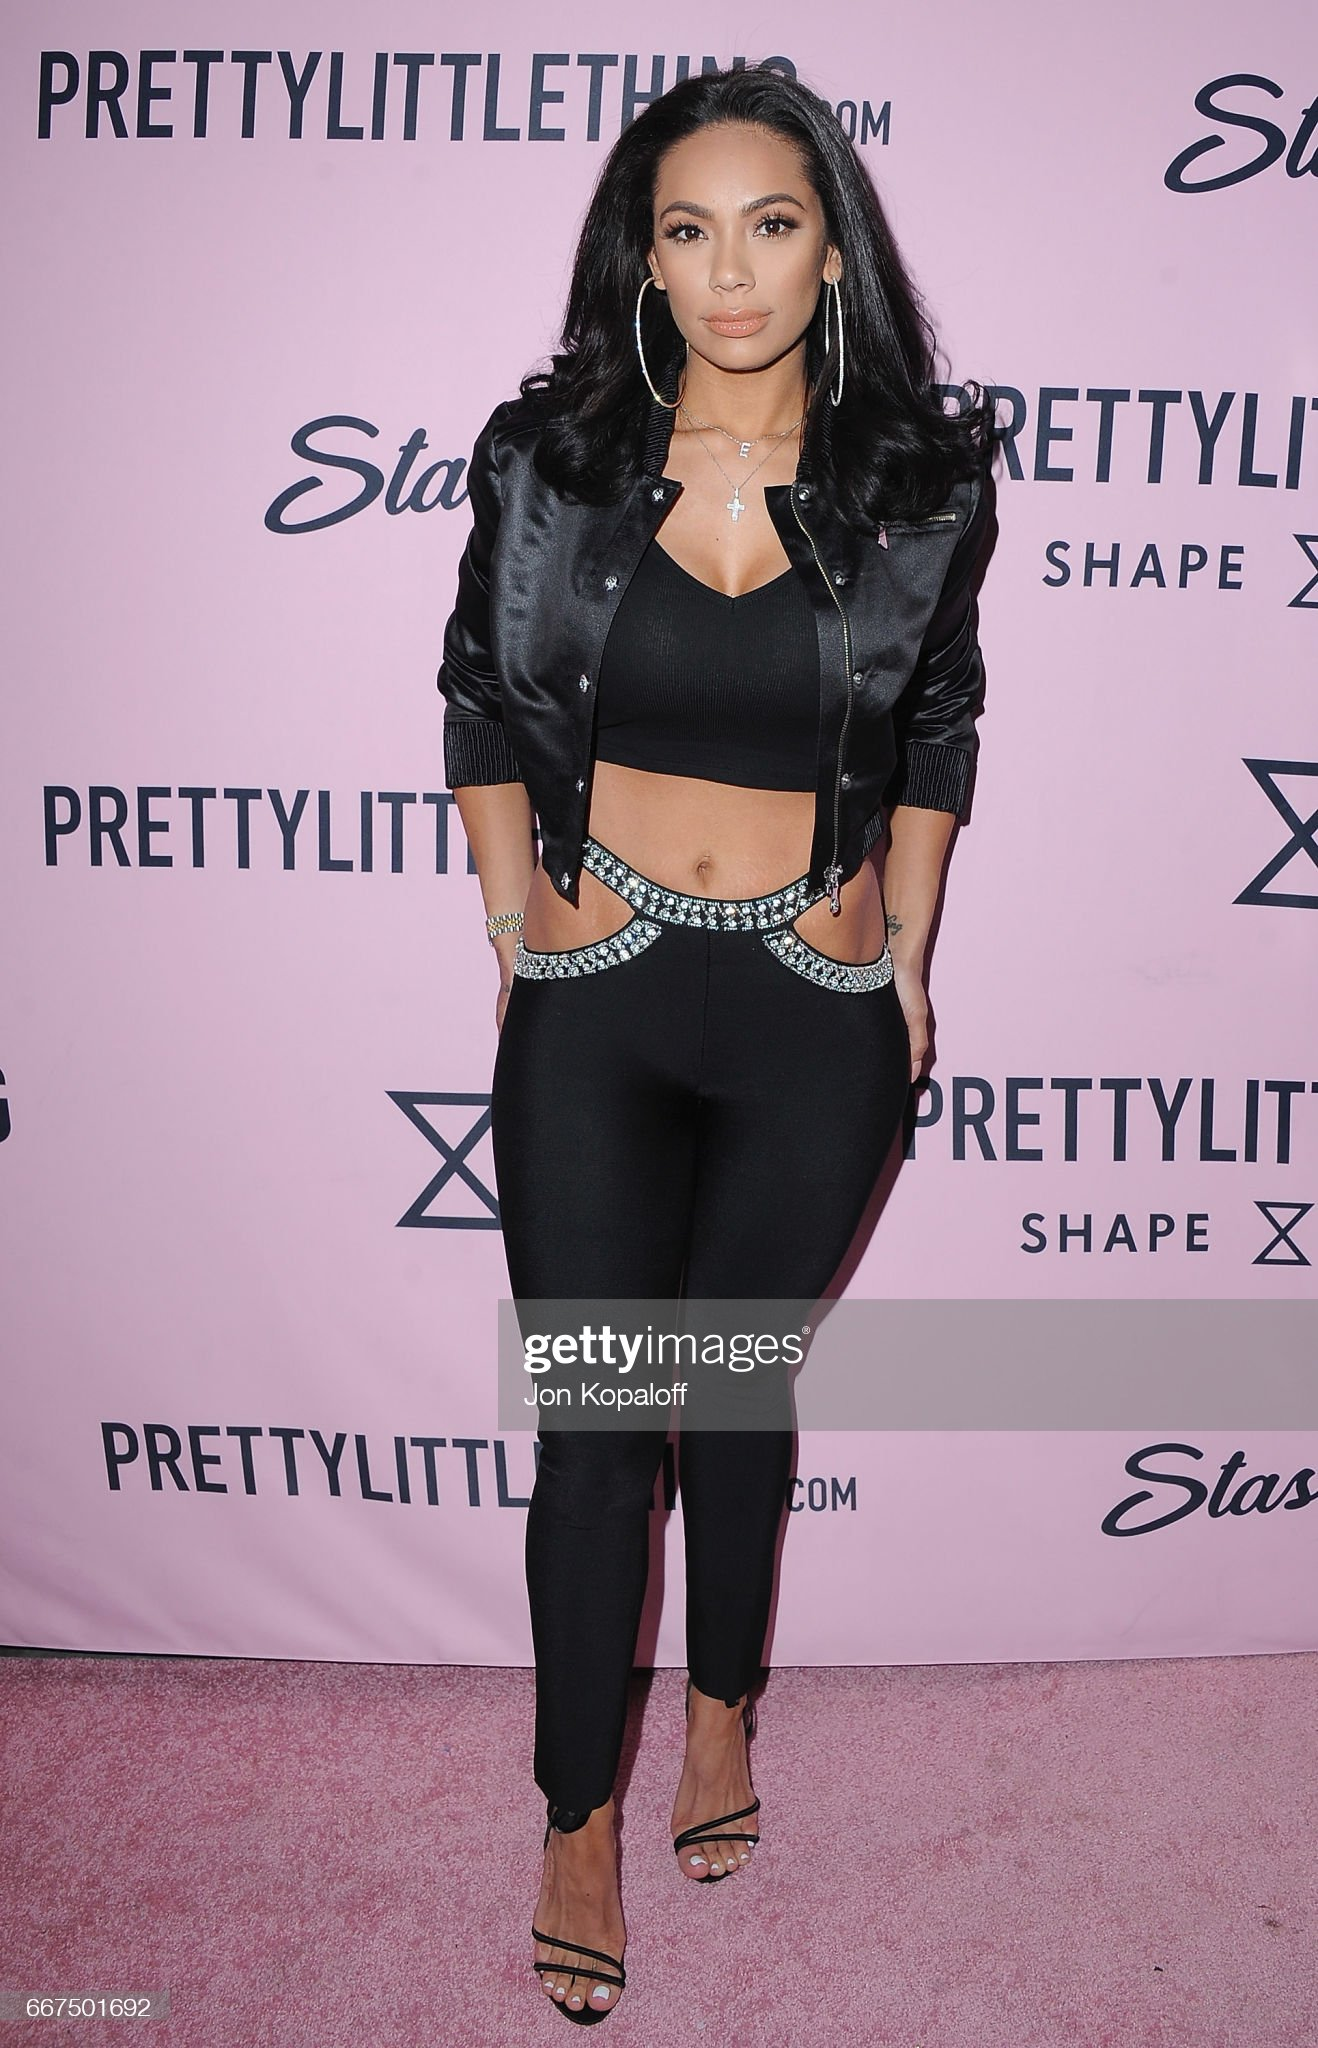 Top 80 Famosas Foroalturas - Página 2 Erica-mena-arrives-at-prettylittlething-campaign-launch-for-plt-shape-picture-id667501692?s=2048x2048